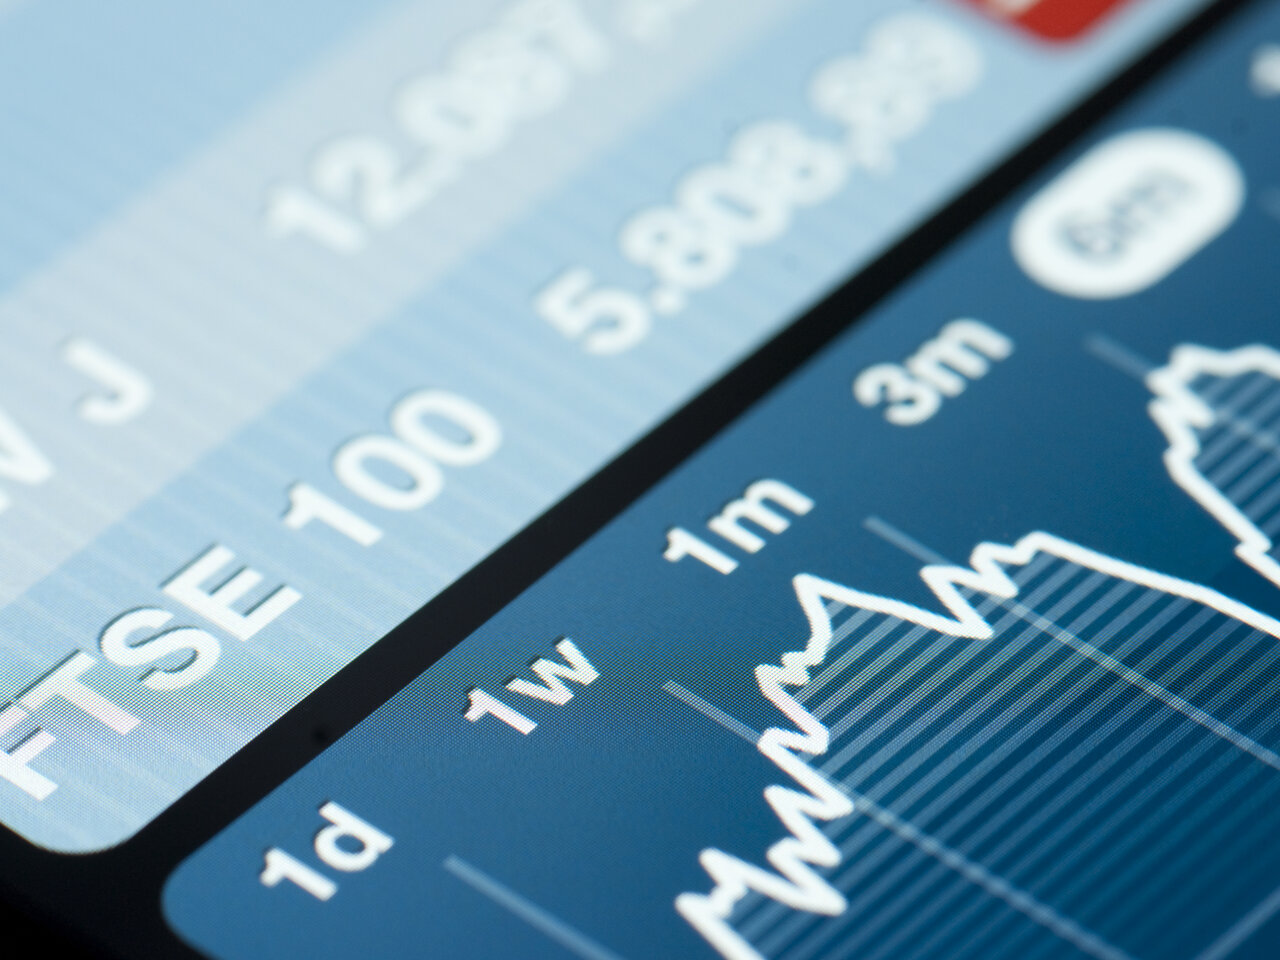 FTSE 100 closed 48 points or 0 7% down to 6,717 93